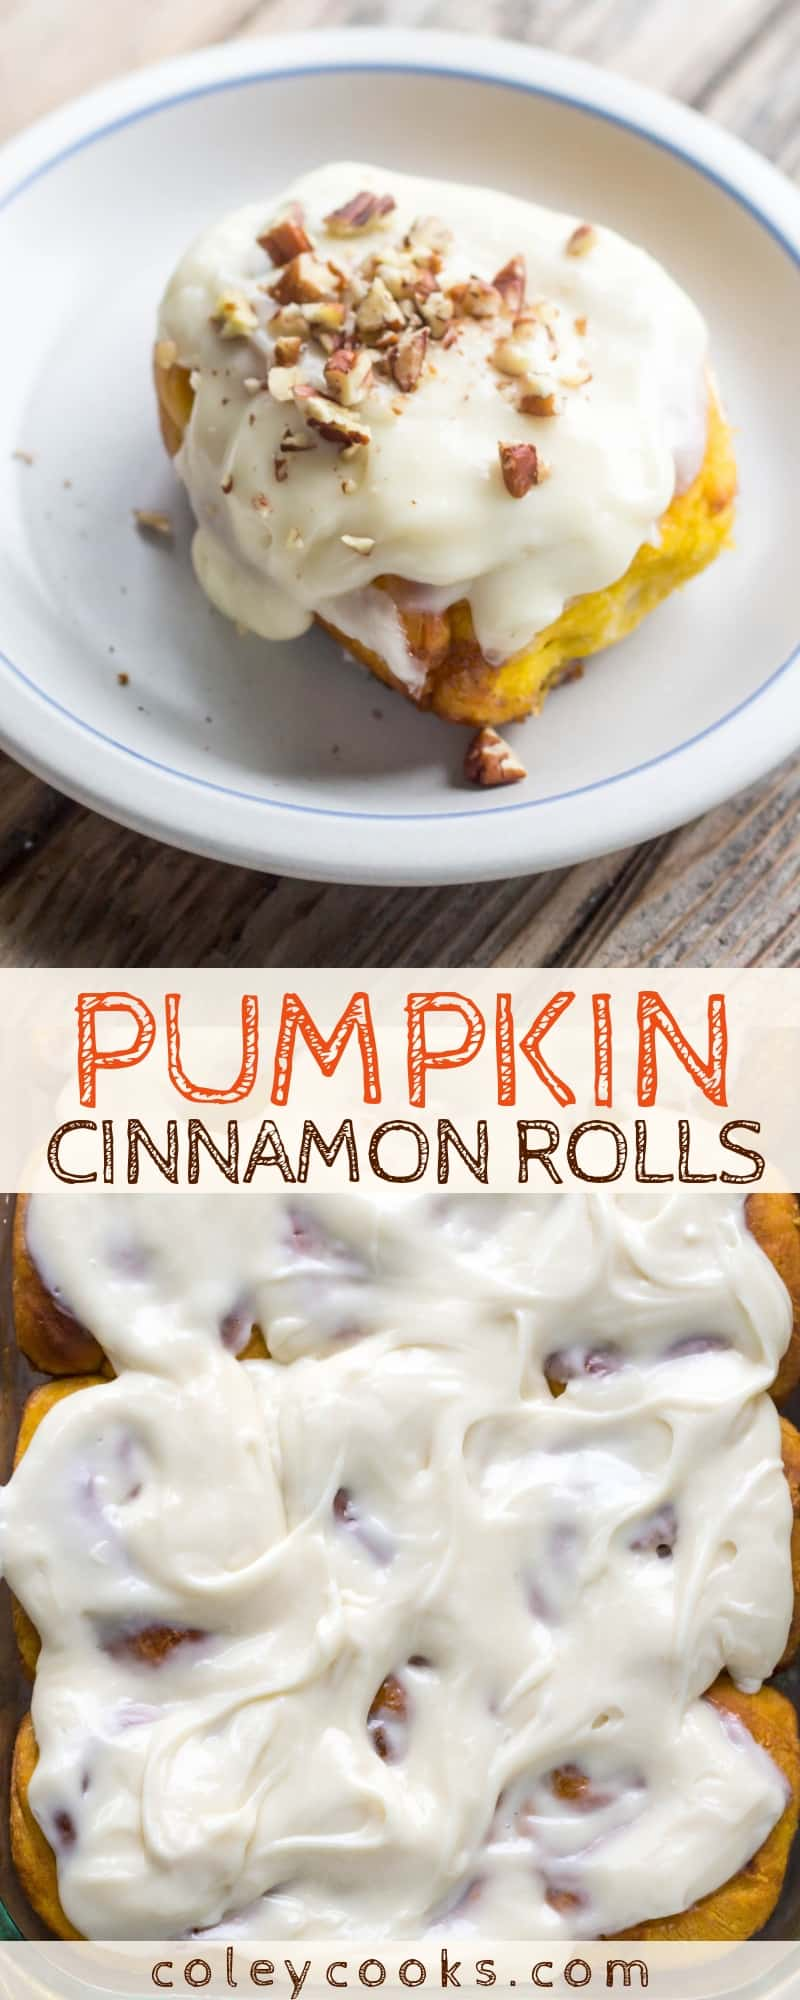 PUMPKIN CINNAMON ROLLS   Insanely delicious pumpkin cinnamon bun recipe with cream cheese frosting perfect for fall and Thanksgiving! #thanksgiving #pumpkin #cinnamon #rolls #buns #cinnabon #recipe #pecan #creamcheesefrosting   ColeyCooks.com